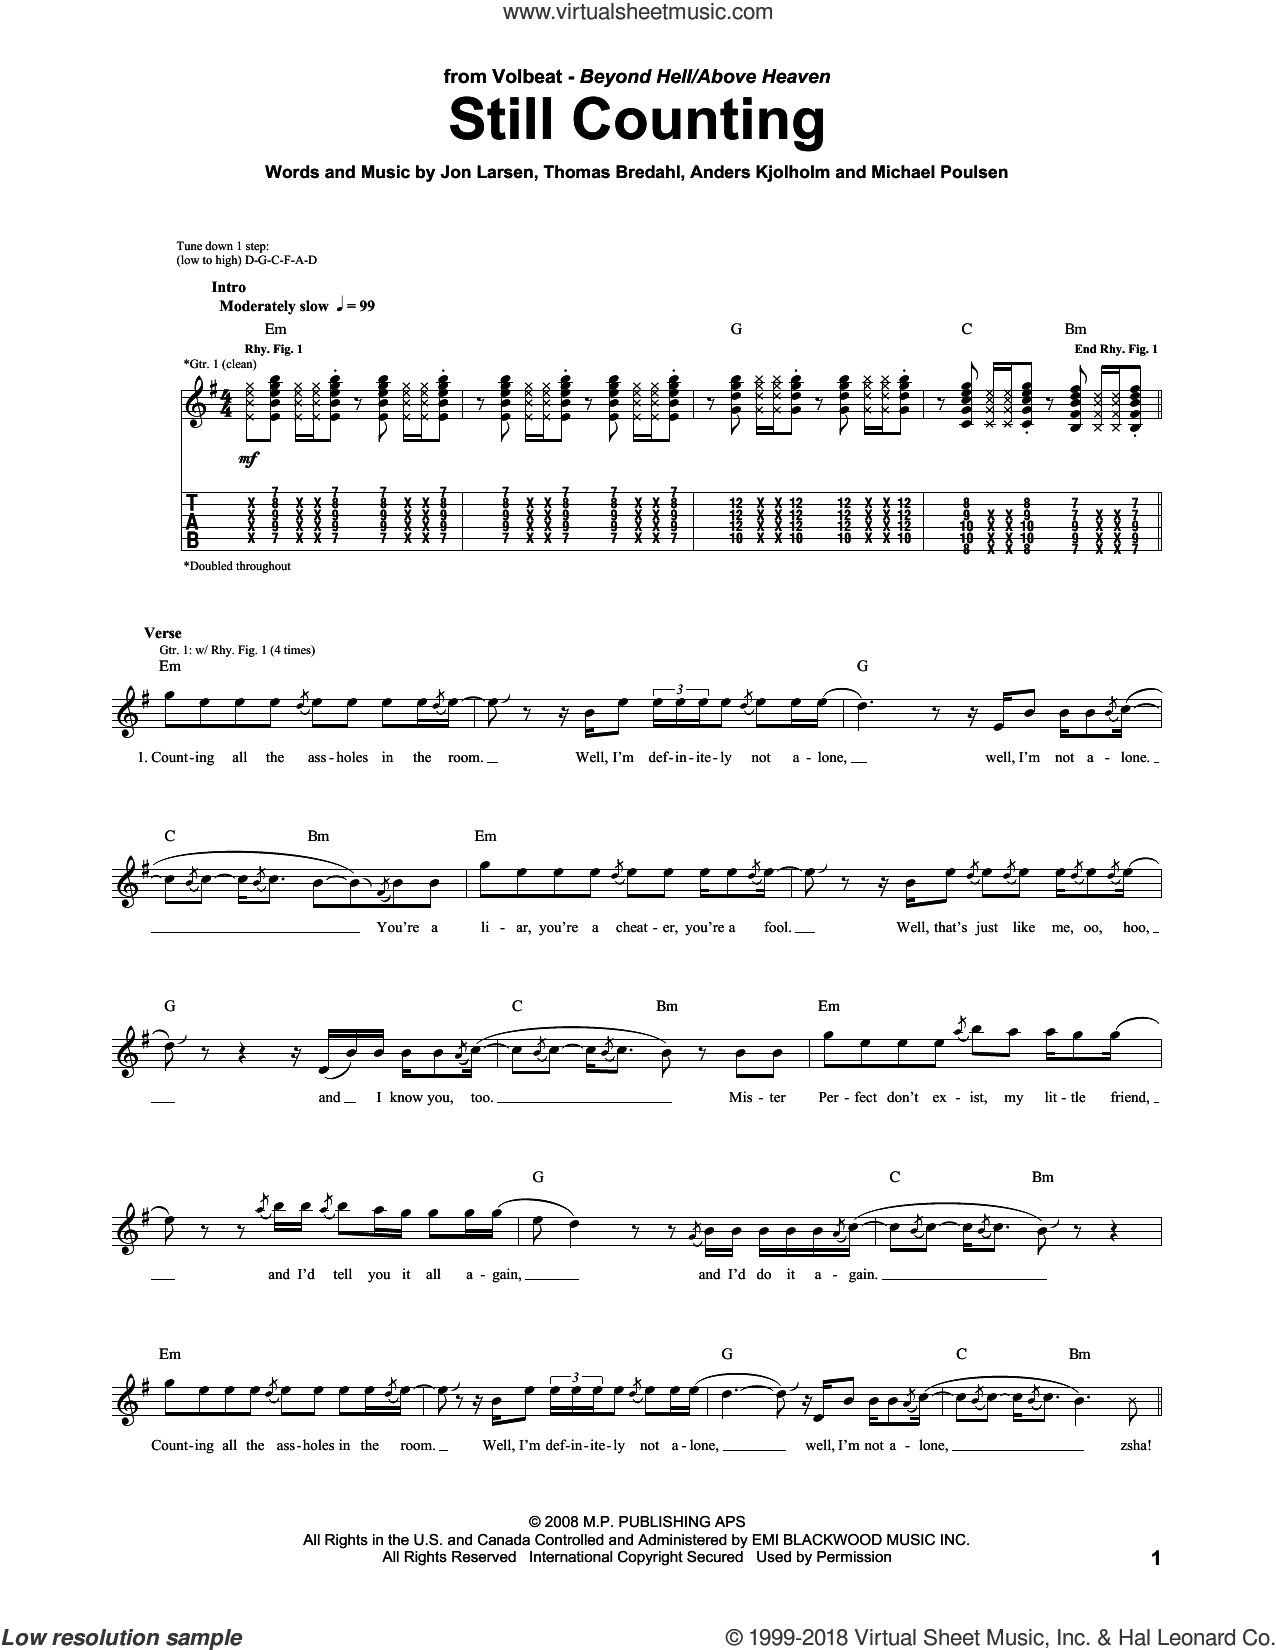 Still Counting sheet music for guitar (tablature) by Volbeat, Anders Kjolholm, Jon Larsen, Michael Poulsen and Thomas Bredahl, intermediate skill level